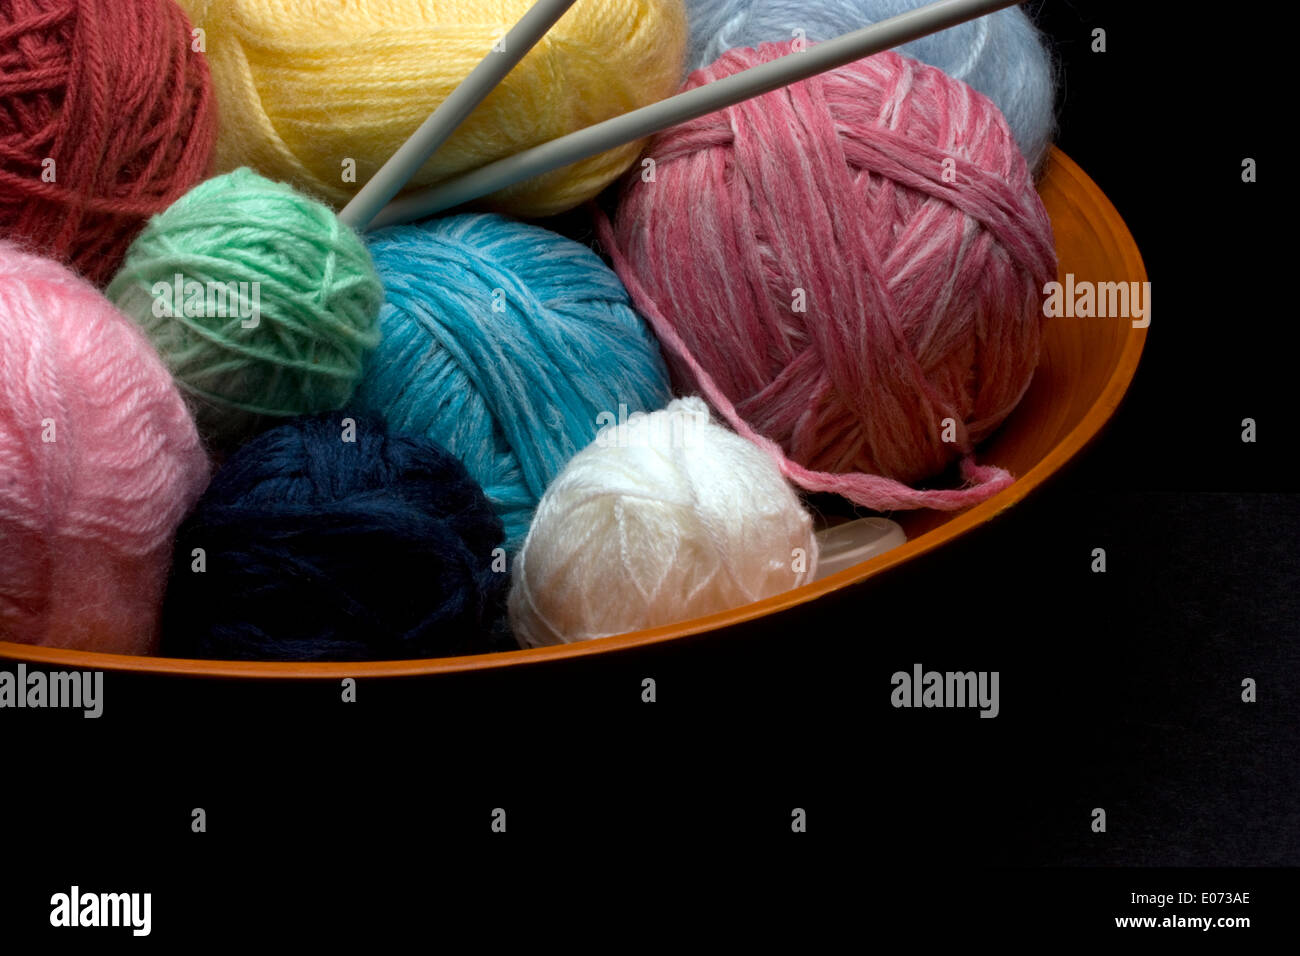 Multi-Colored Knitting Yarn in a Bowl - Stock Image